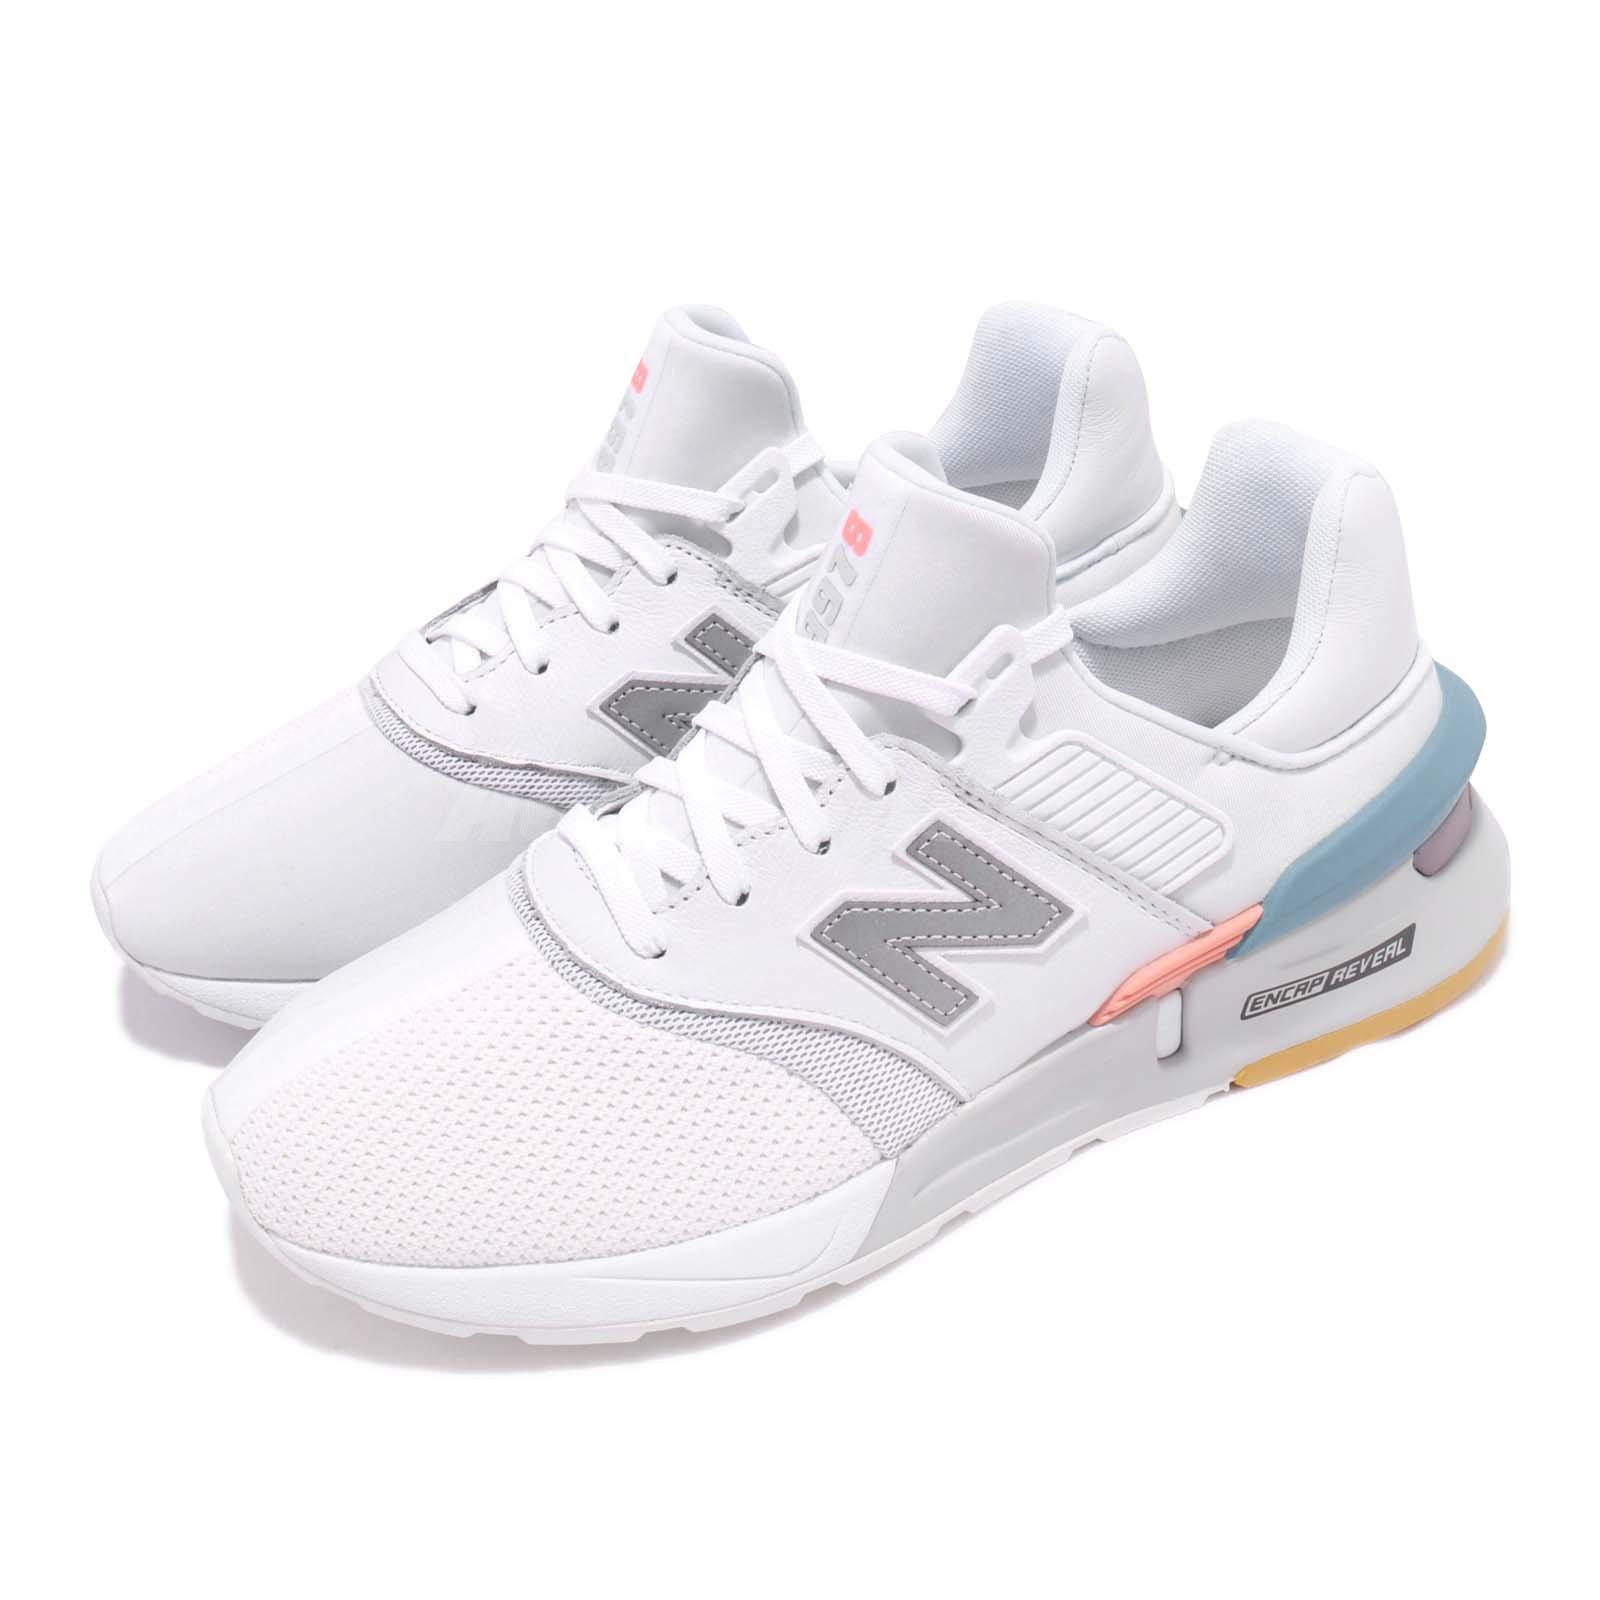 3177a00980fe0 Details about New Balance MS997XTC D White Blue Grey Men Running Shoes  Sneakers MS997XTCD